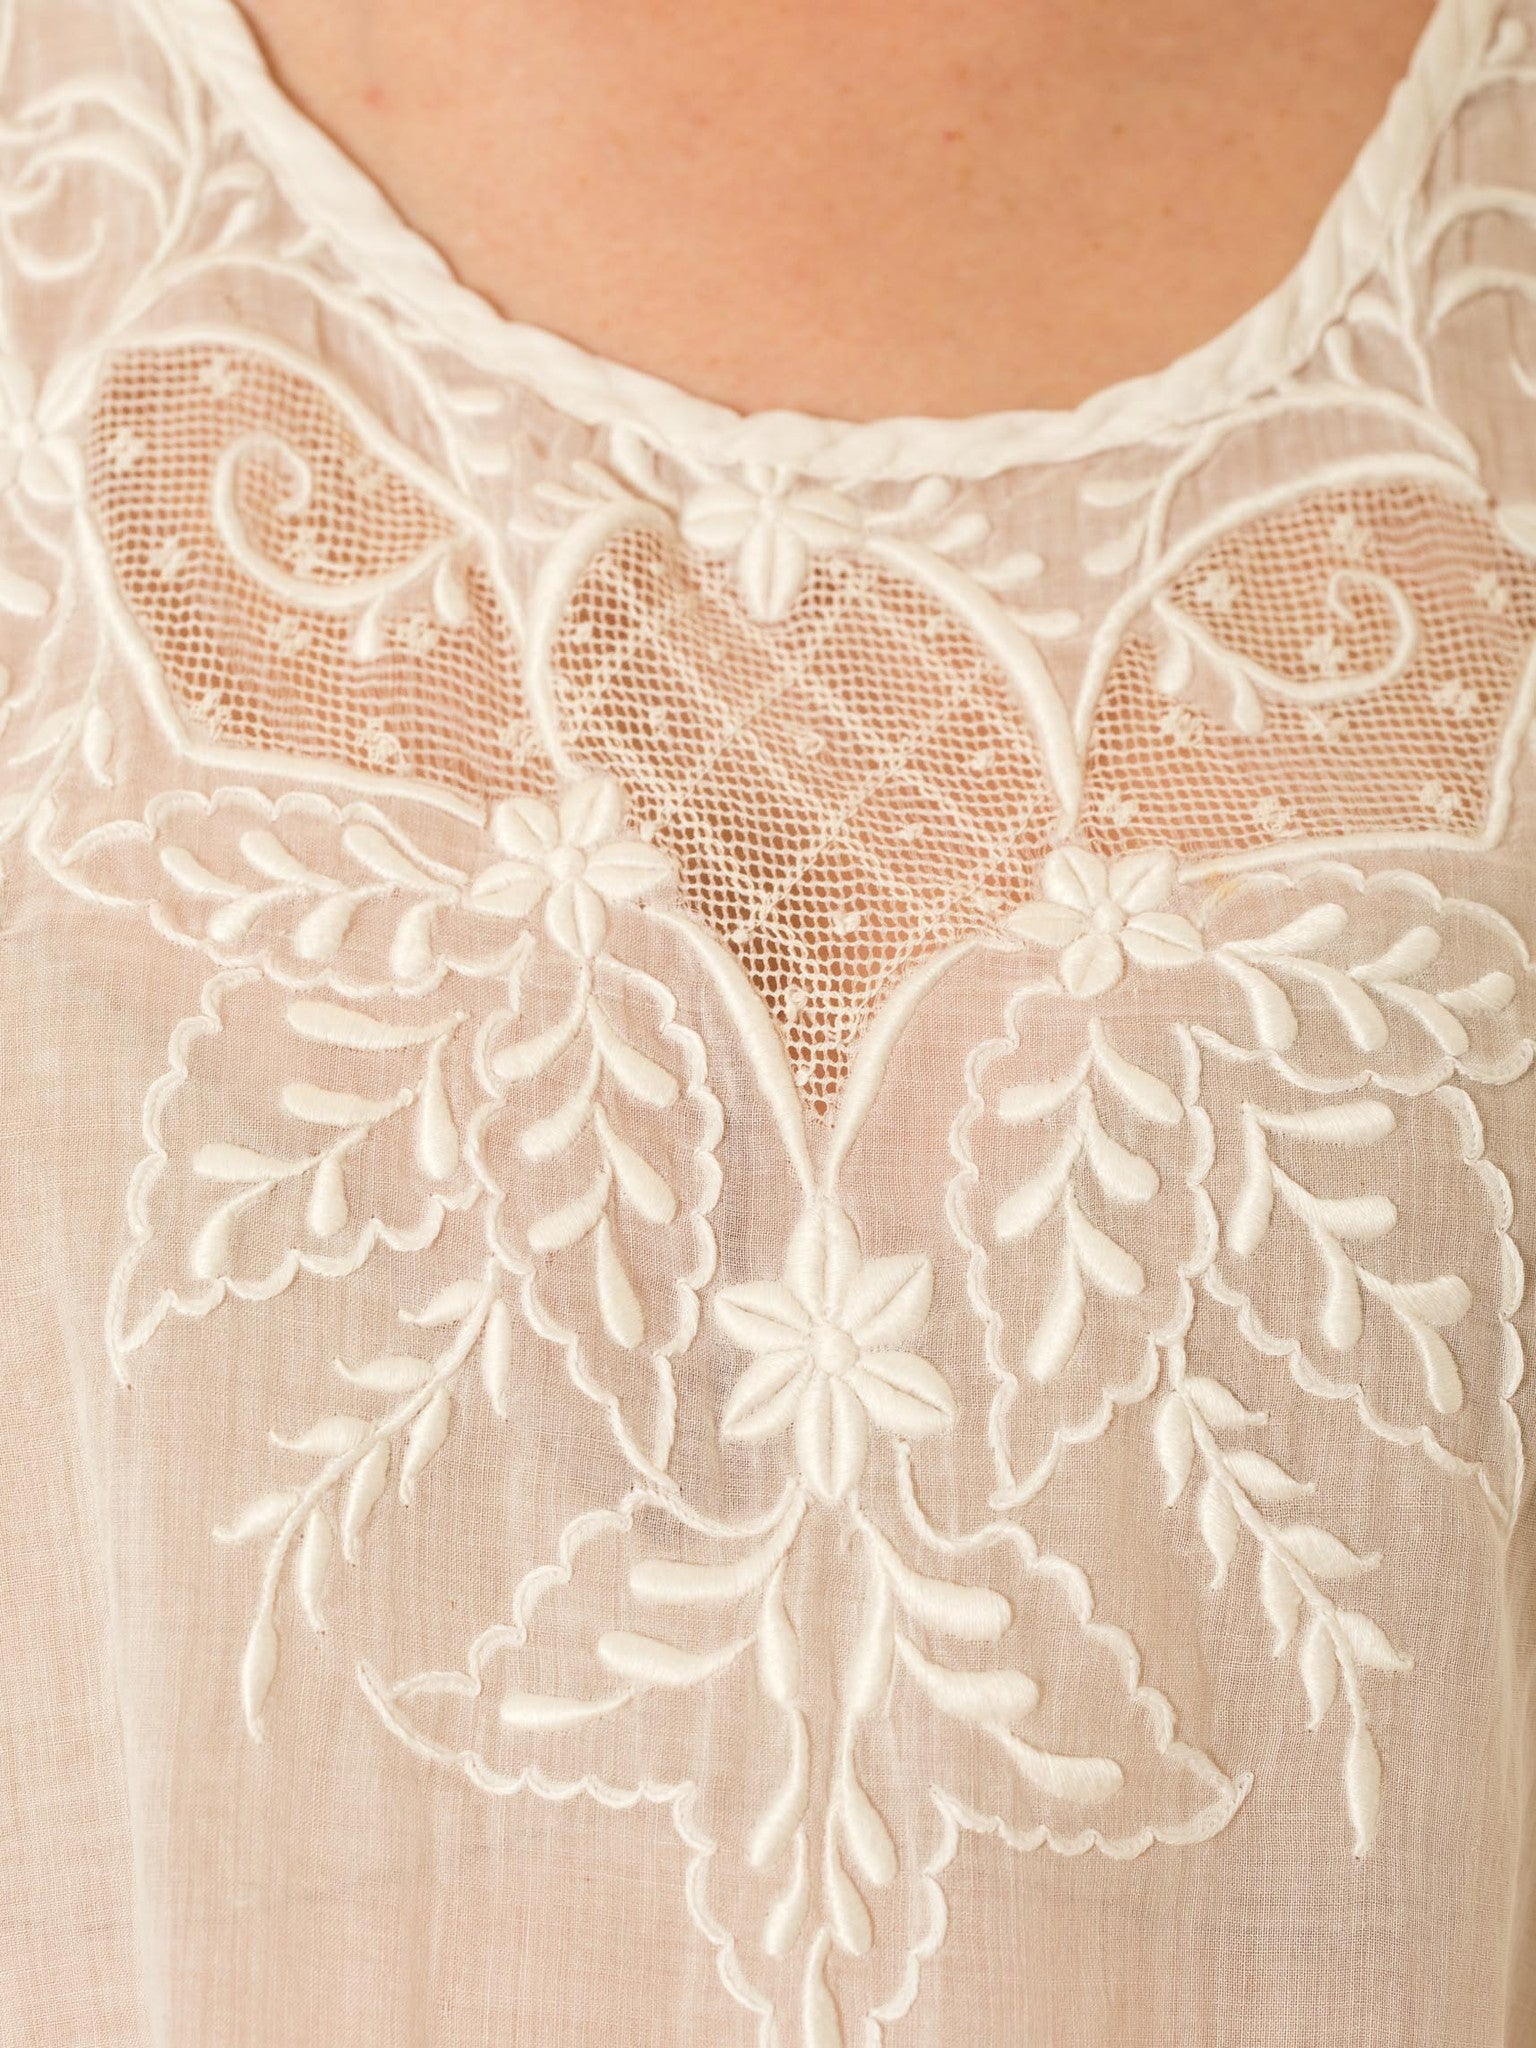 Edwardian White Cotton Voile Oversized Top With Very High Quality Hand Embroidery